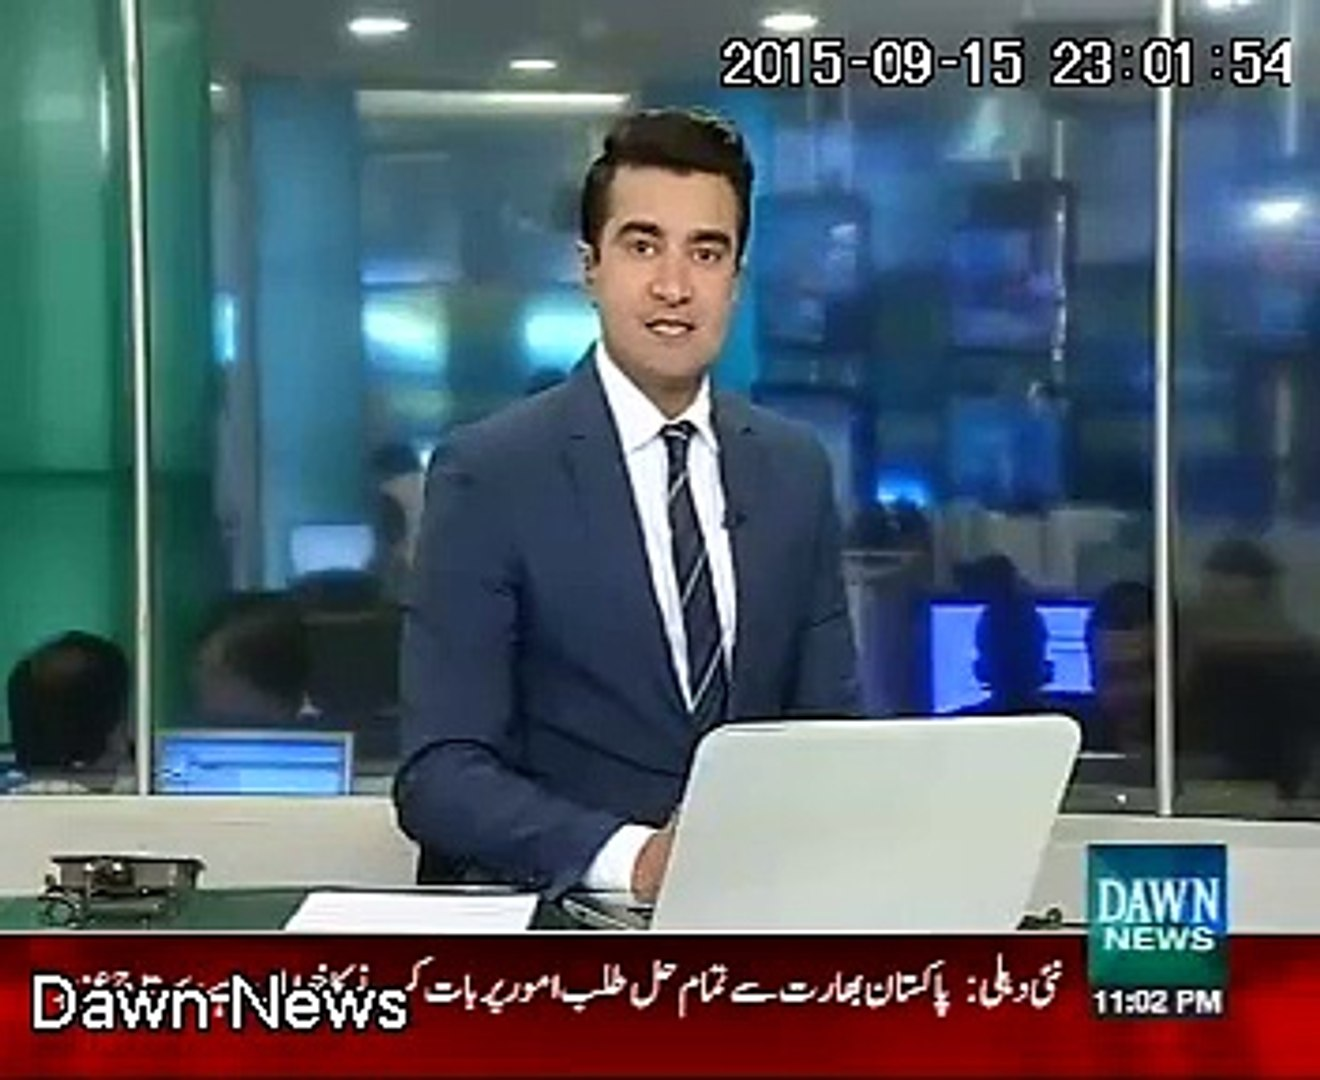 dawn news school news